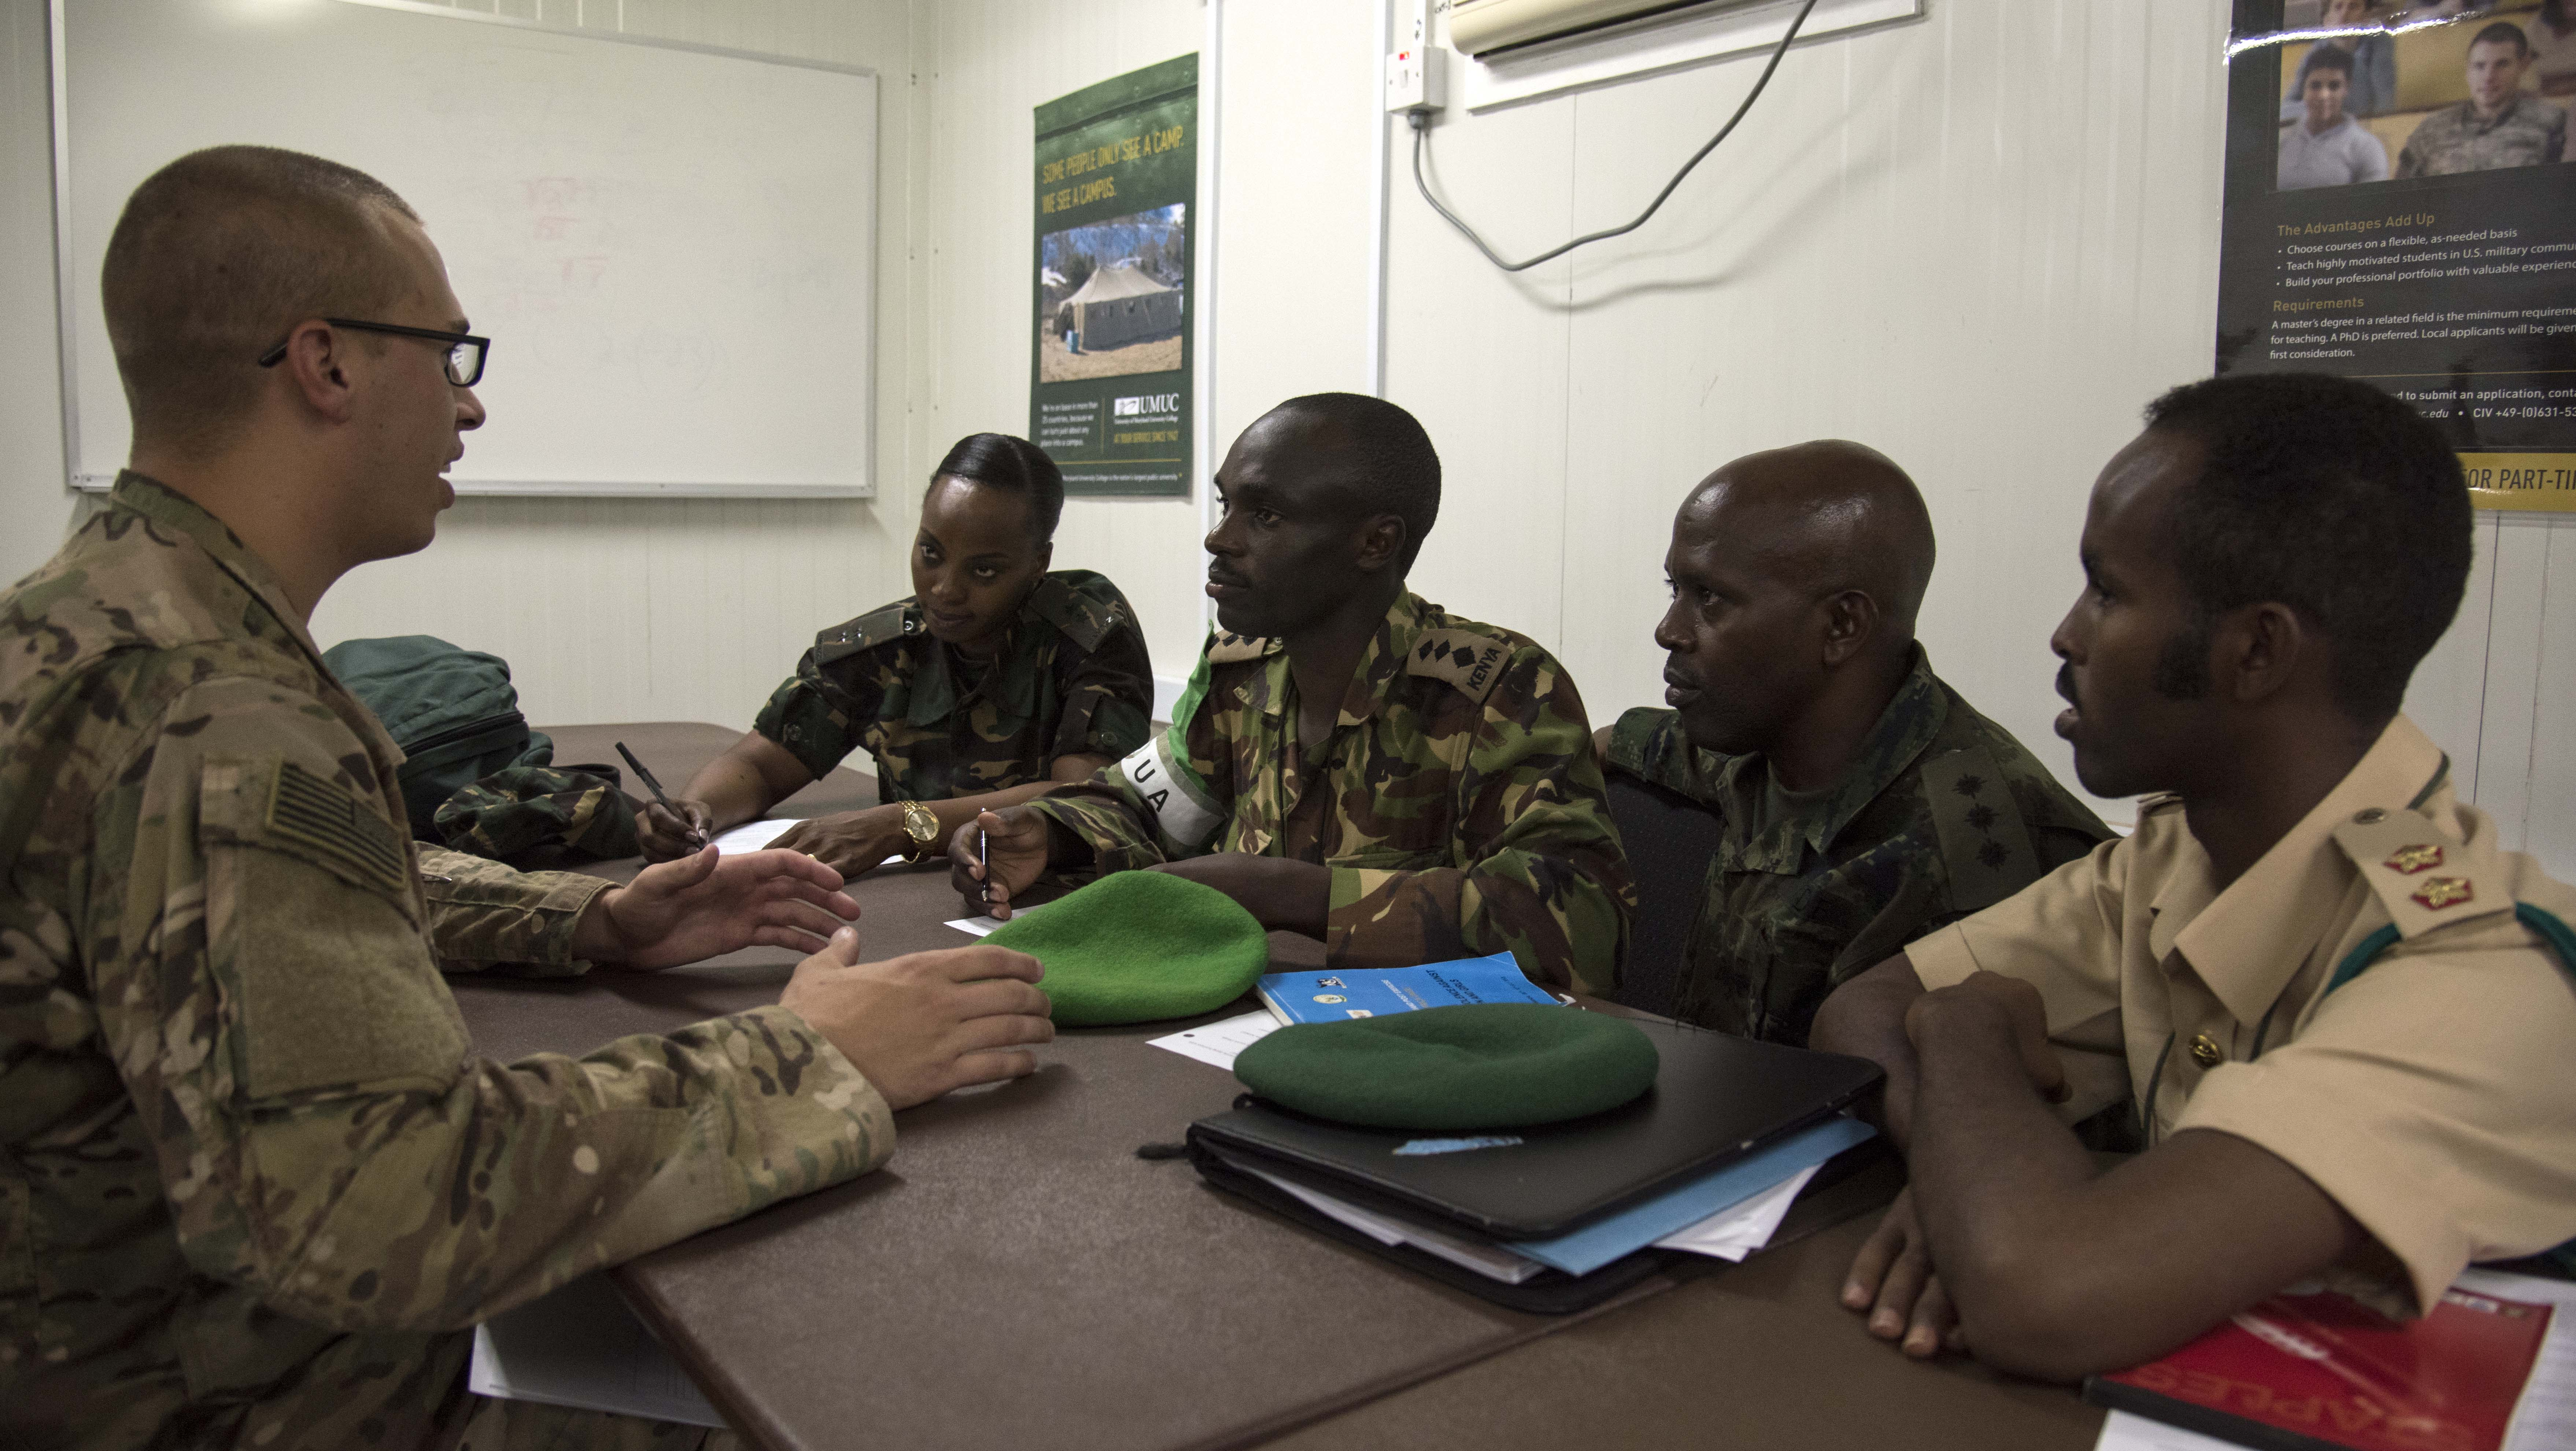 Multinational members from partner nations practice conversing with simulated local media during the Public Information Officer Conference, hosted by Combined Joint Task Force-Horn of Africa, at Camp Lemonnier, Djibouti, Nov. 4, 2015. The goal of the exercise was to learn how building a report with media members allows for positive future interactions.